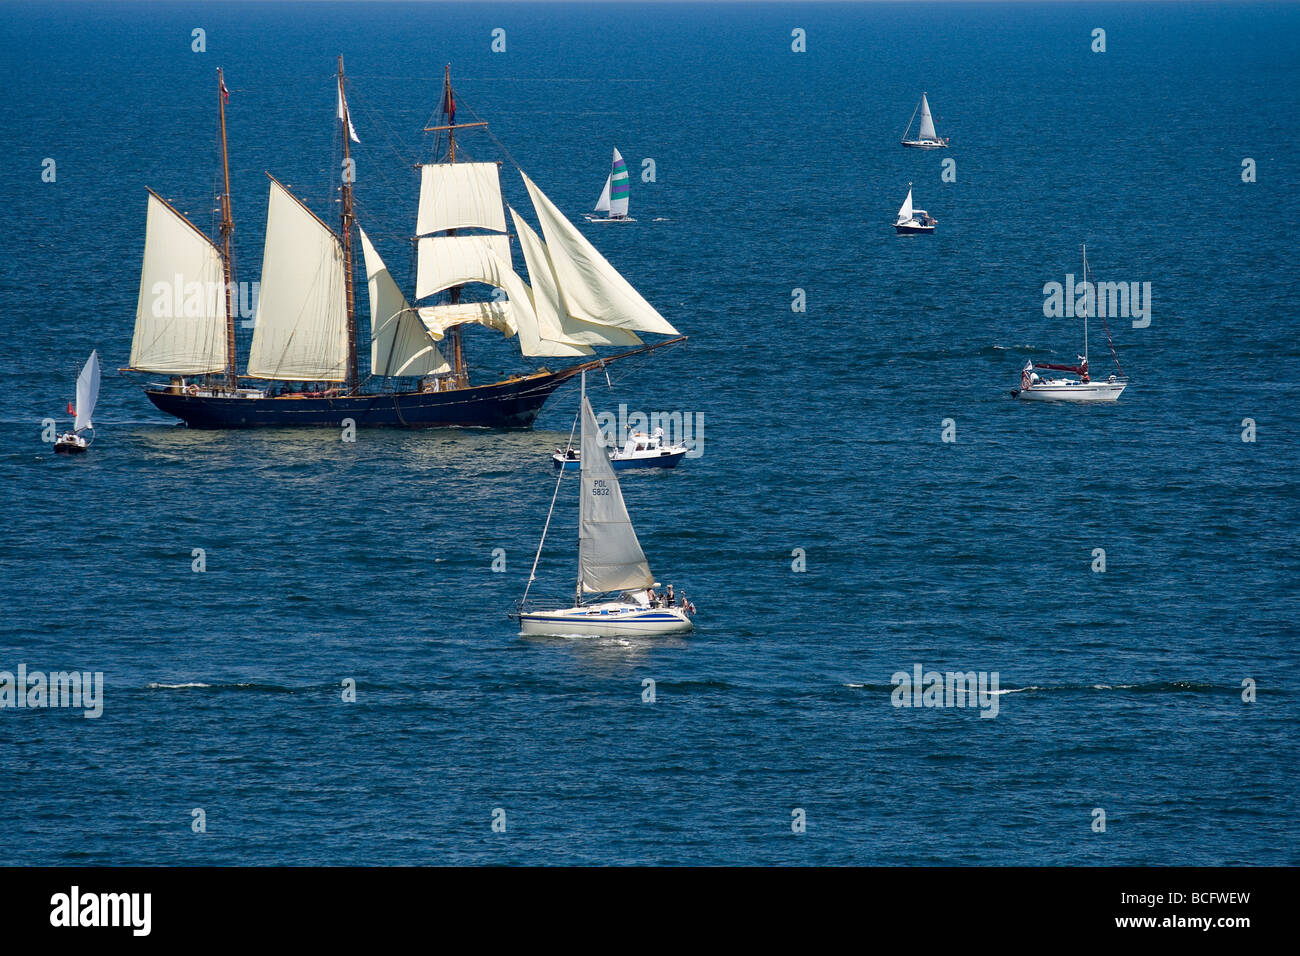 Beginning of Tall Ships Races 2009, Gdynia, Poland - Stock Image